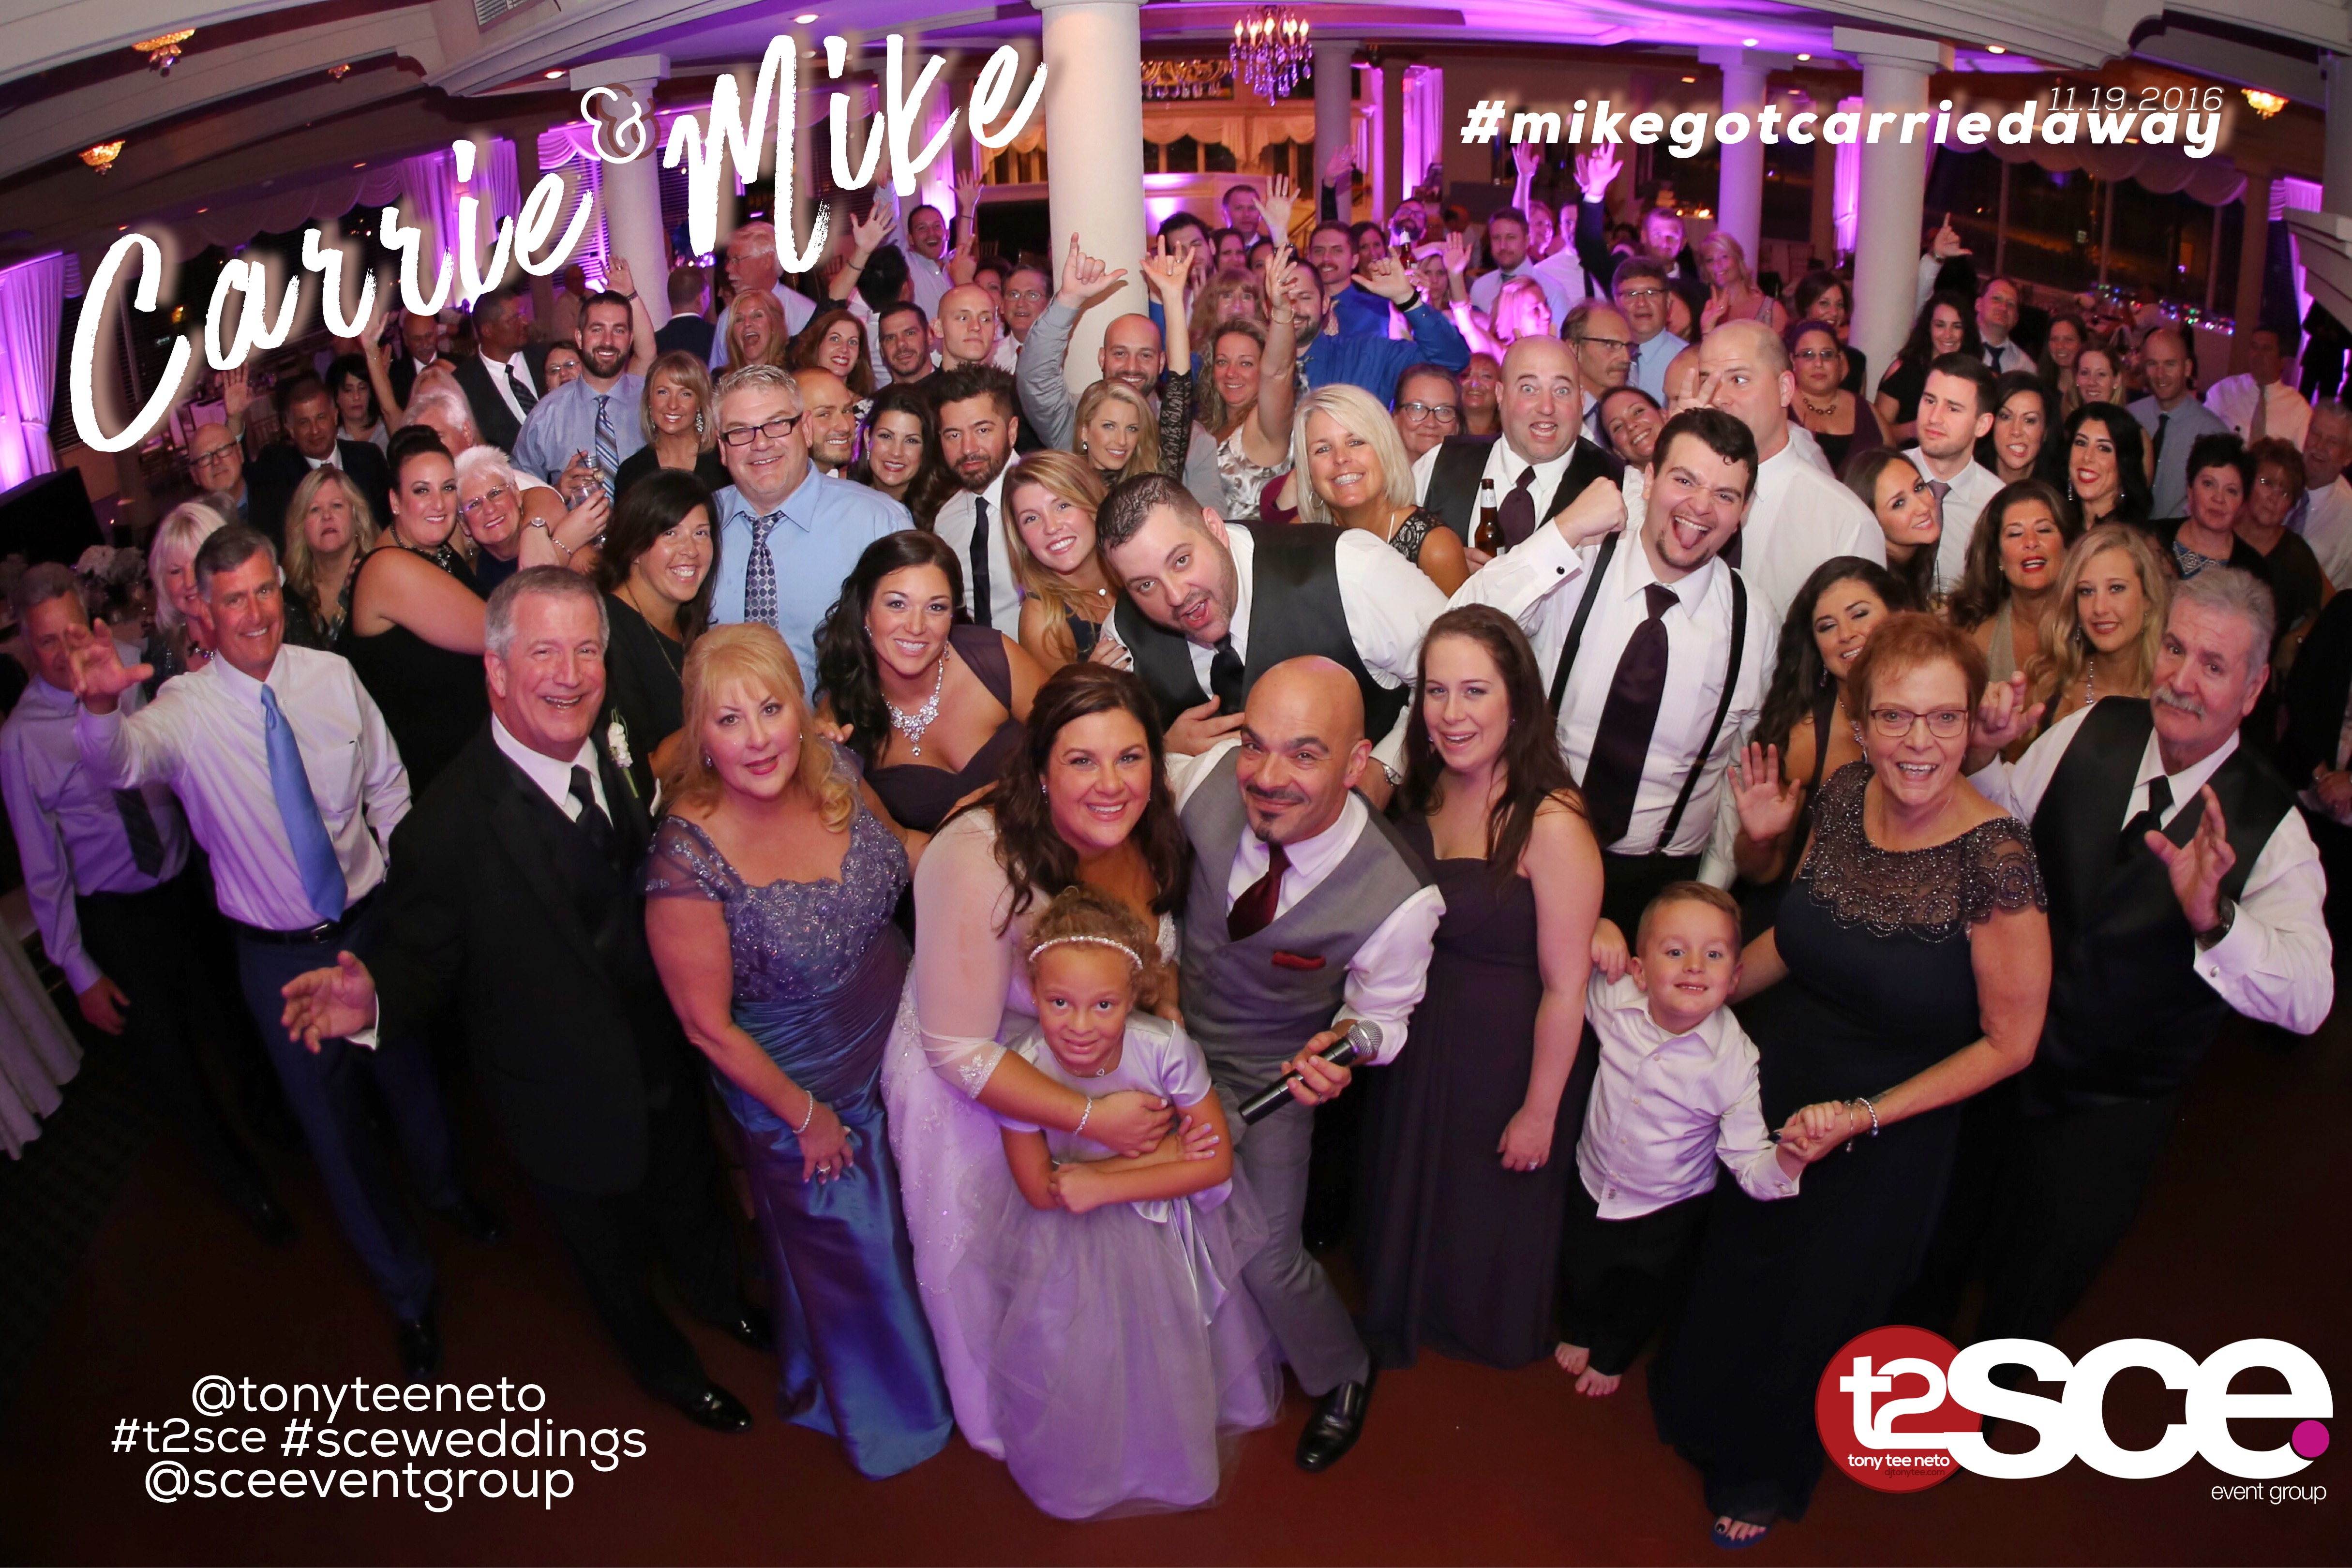 Carrie & Mike: Tony Tee Neto & SCE Event Group at The Stateroom, LBI, NJ (11/19/2016)